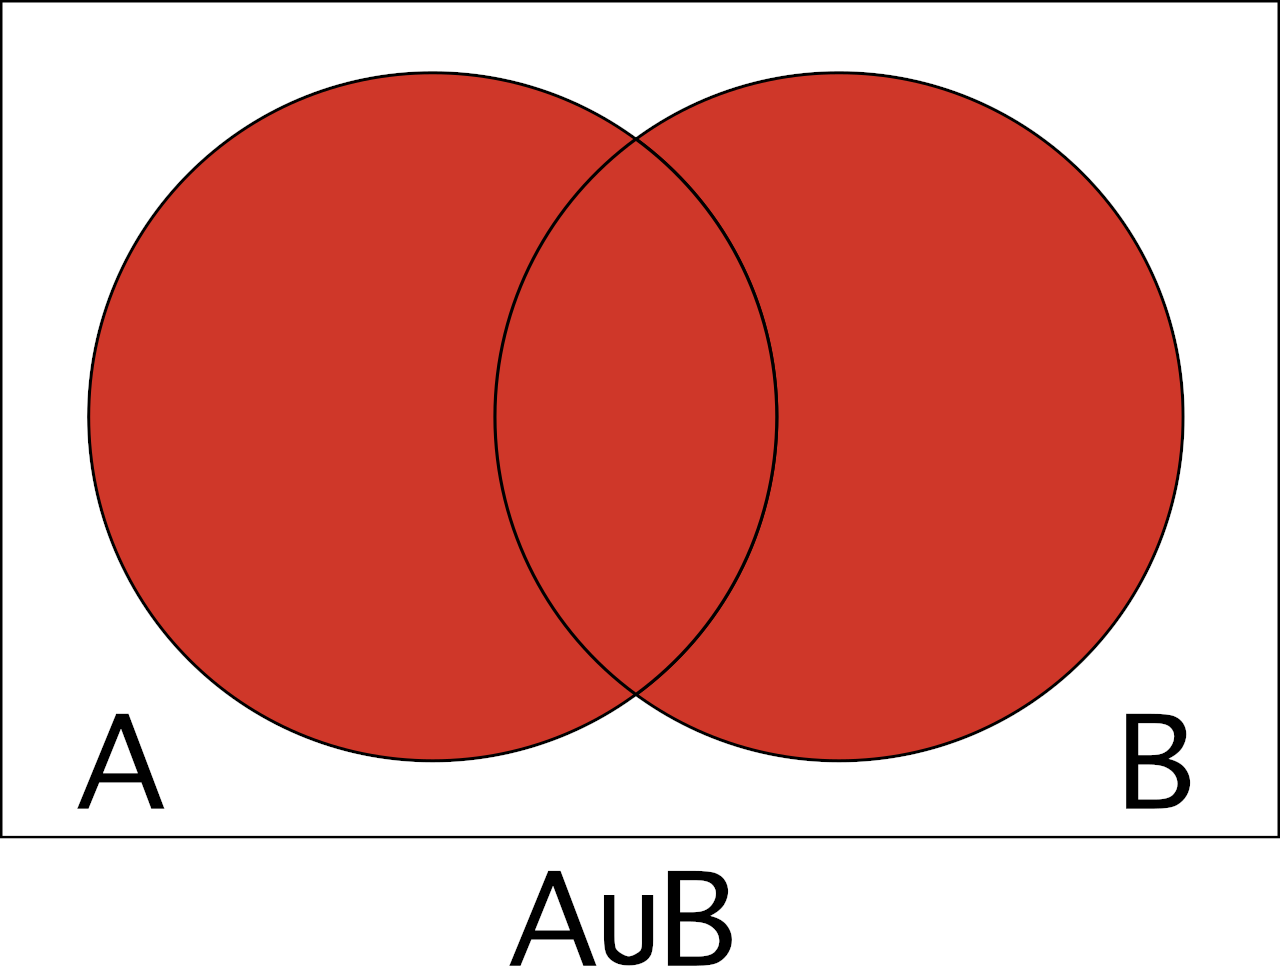 Venn diagram to help visualize the union of A and B